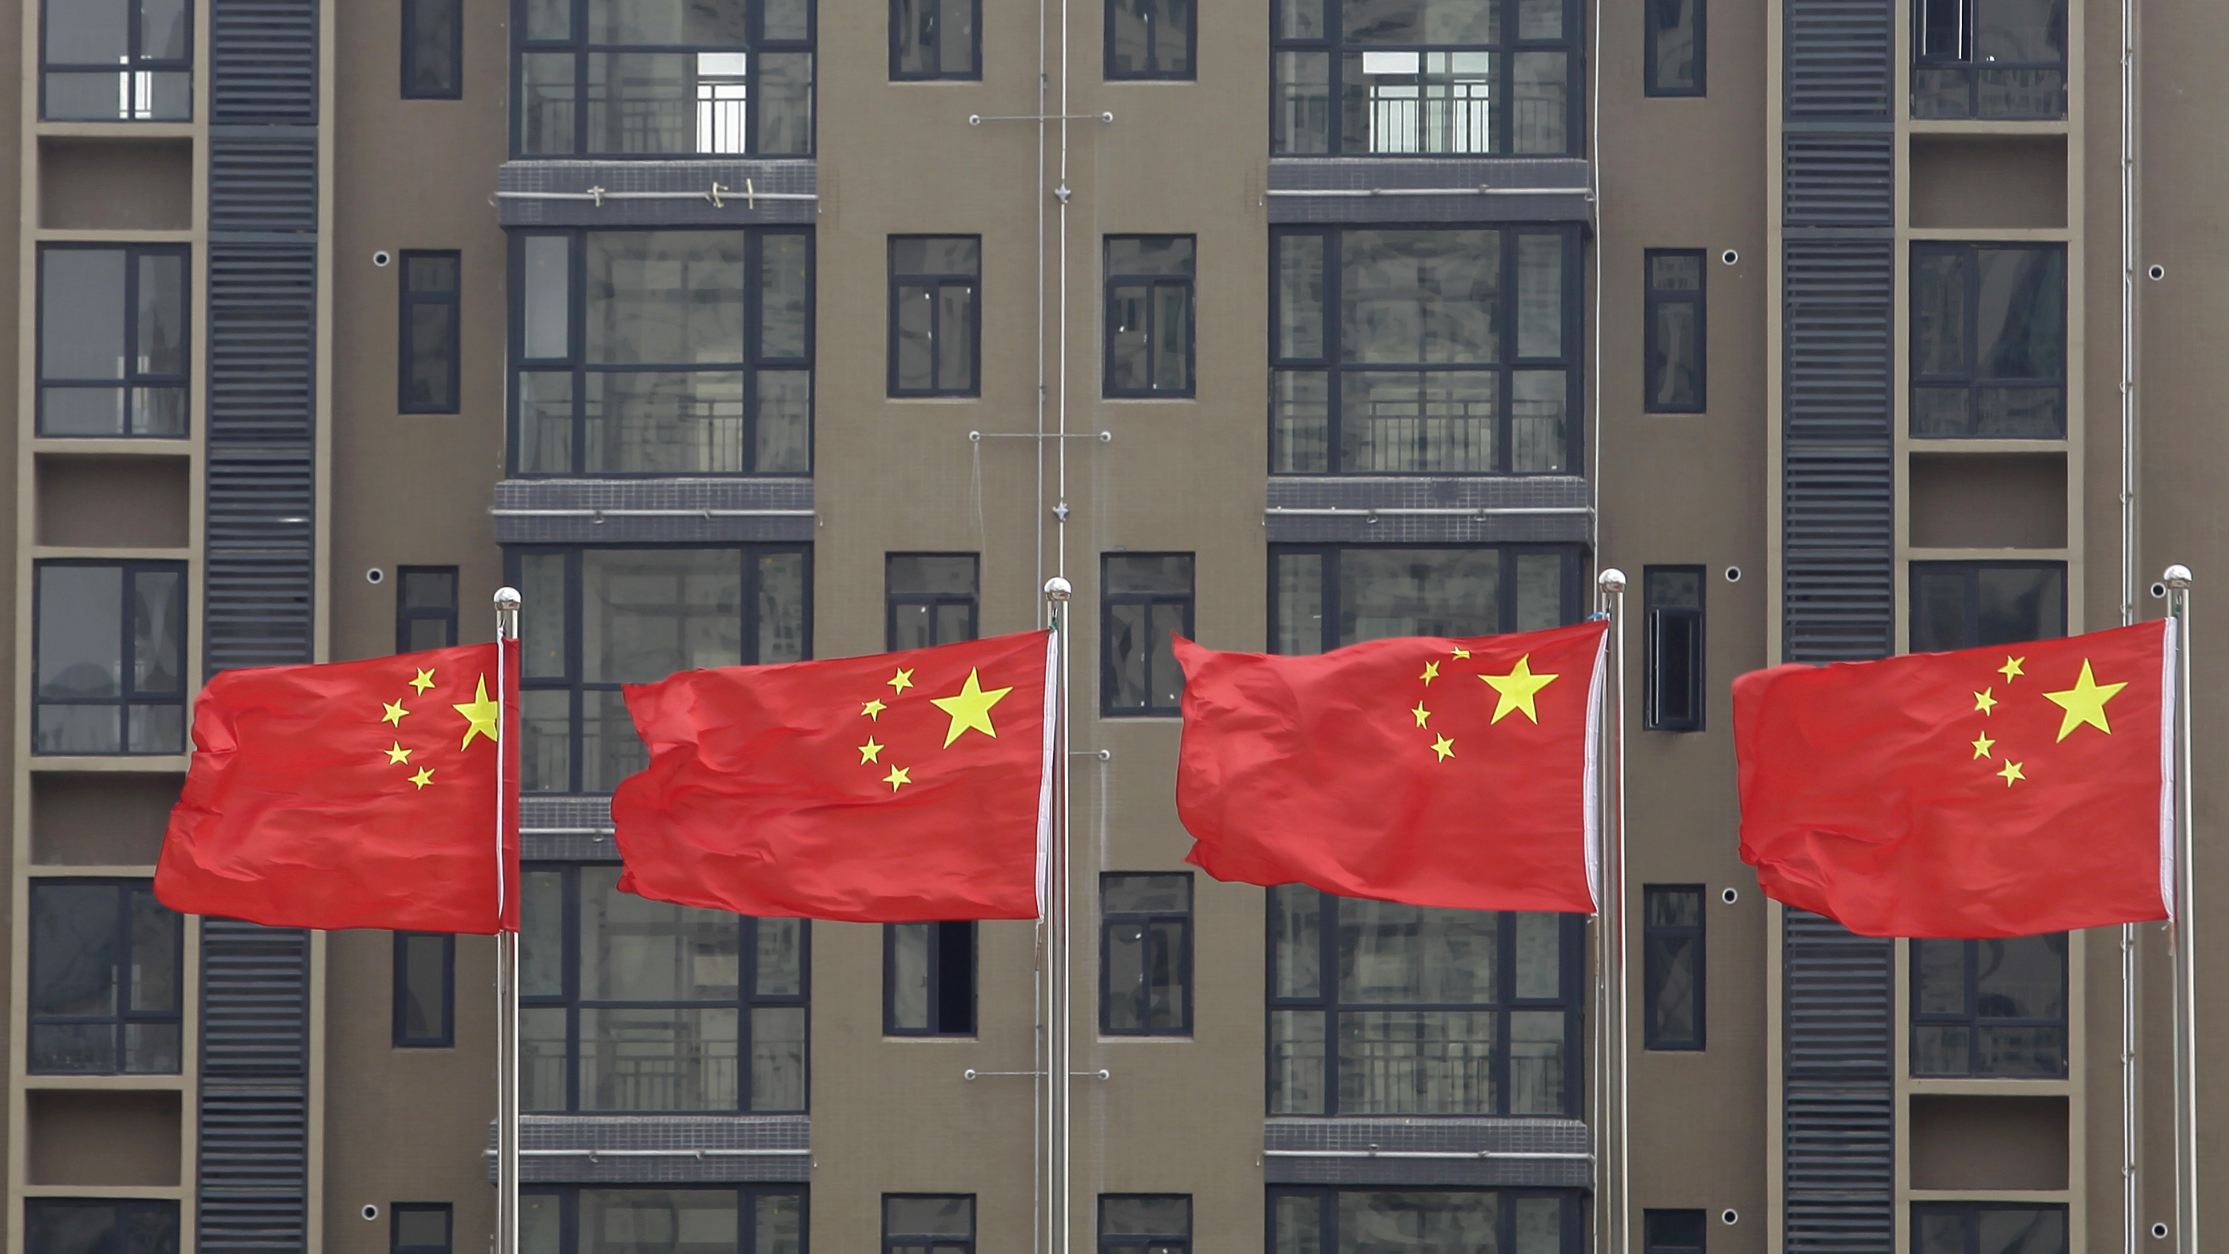 Chinese national flags fly in front of a newly-built residential apartment in Wuhan, Hubei province July 10, 2012. China must firmly maintain its property tightening measures to cool housing prices, Premier Wen Jiabao was quoted as saying on Saturday, underscoring official concerns about renewed bubbles as the central bank ratchets up policy easing to support growth. REUTERS/Stringer